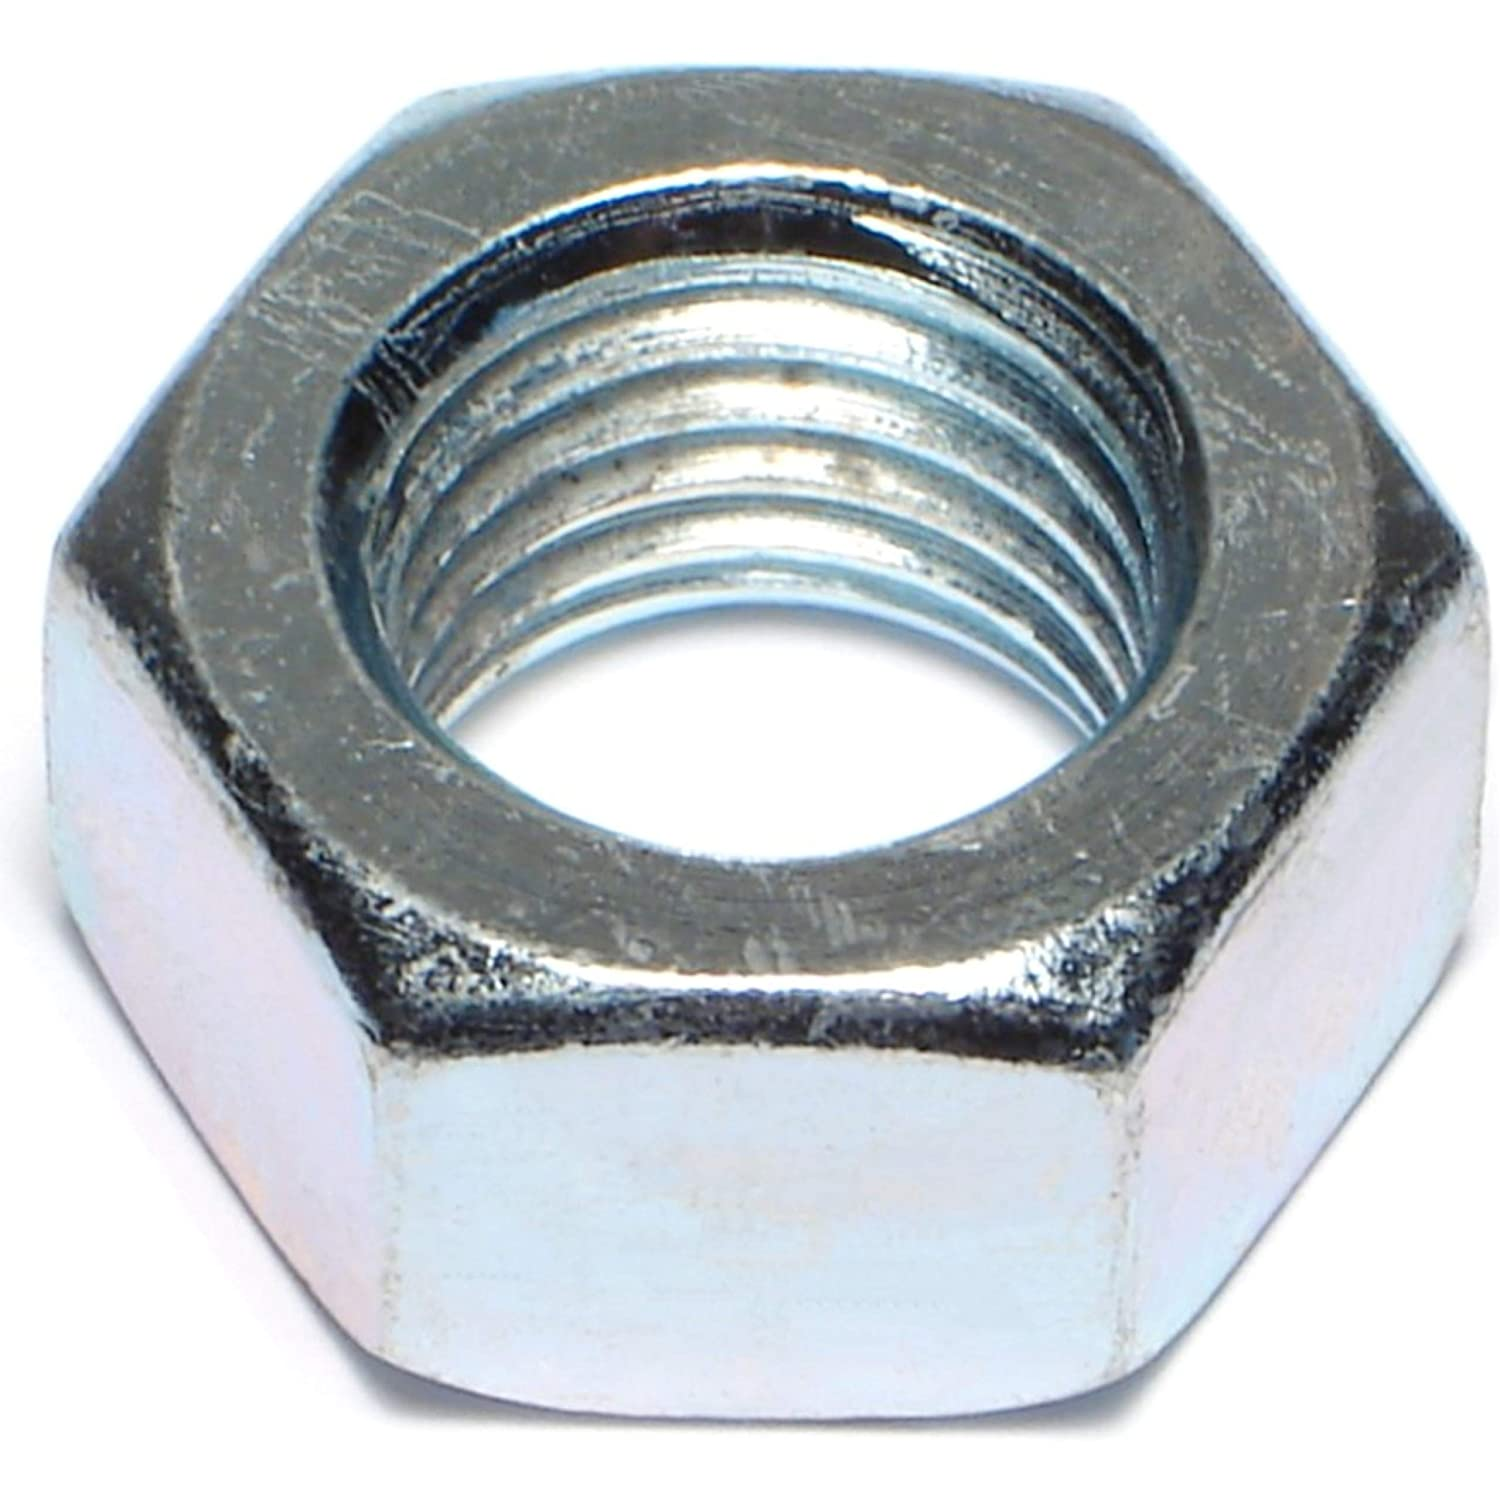 Hard-to-Find Fastener 014973278281 Class 8 Hex Nuts 20mm-2.50 Piece-5